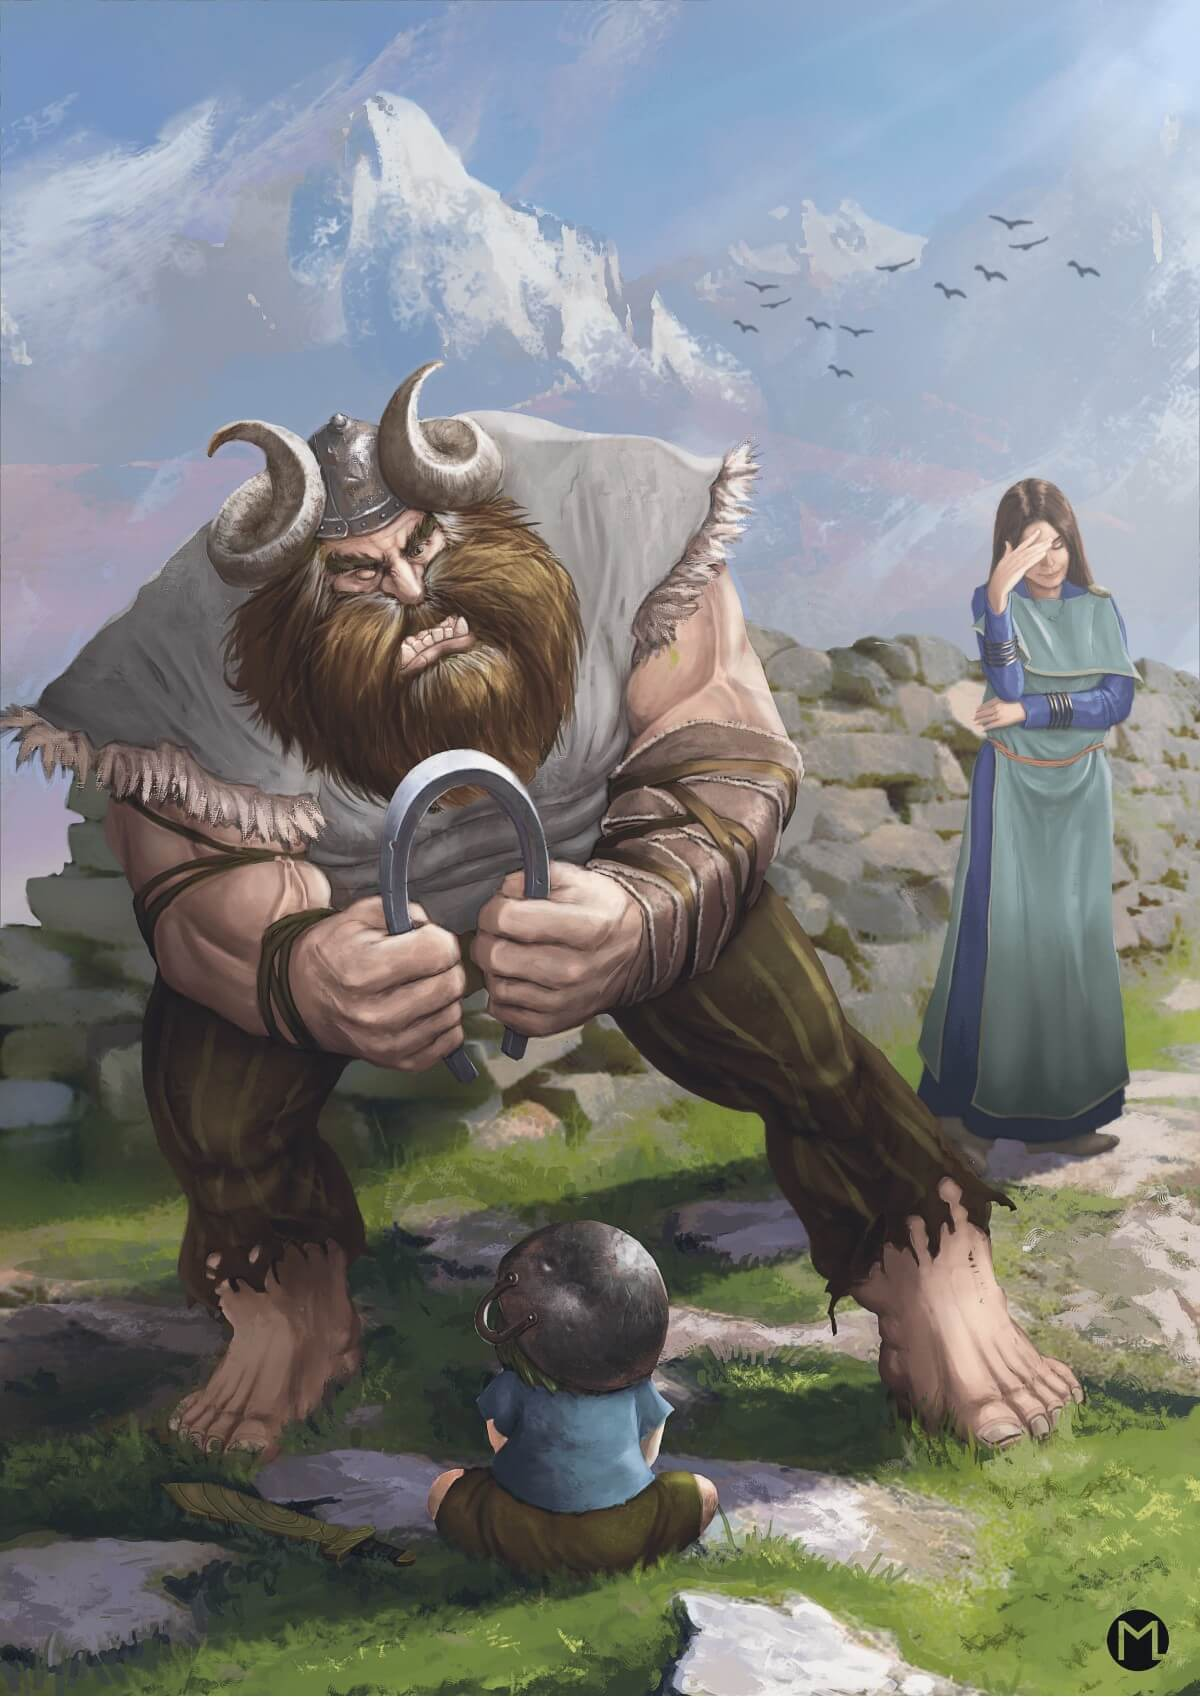 'What does it mean to be a Viking?' by Maxim Lingert, Germany   Viking Warrior Challenge by Huntlancer